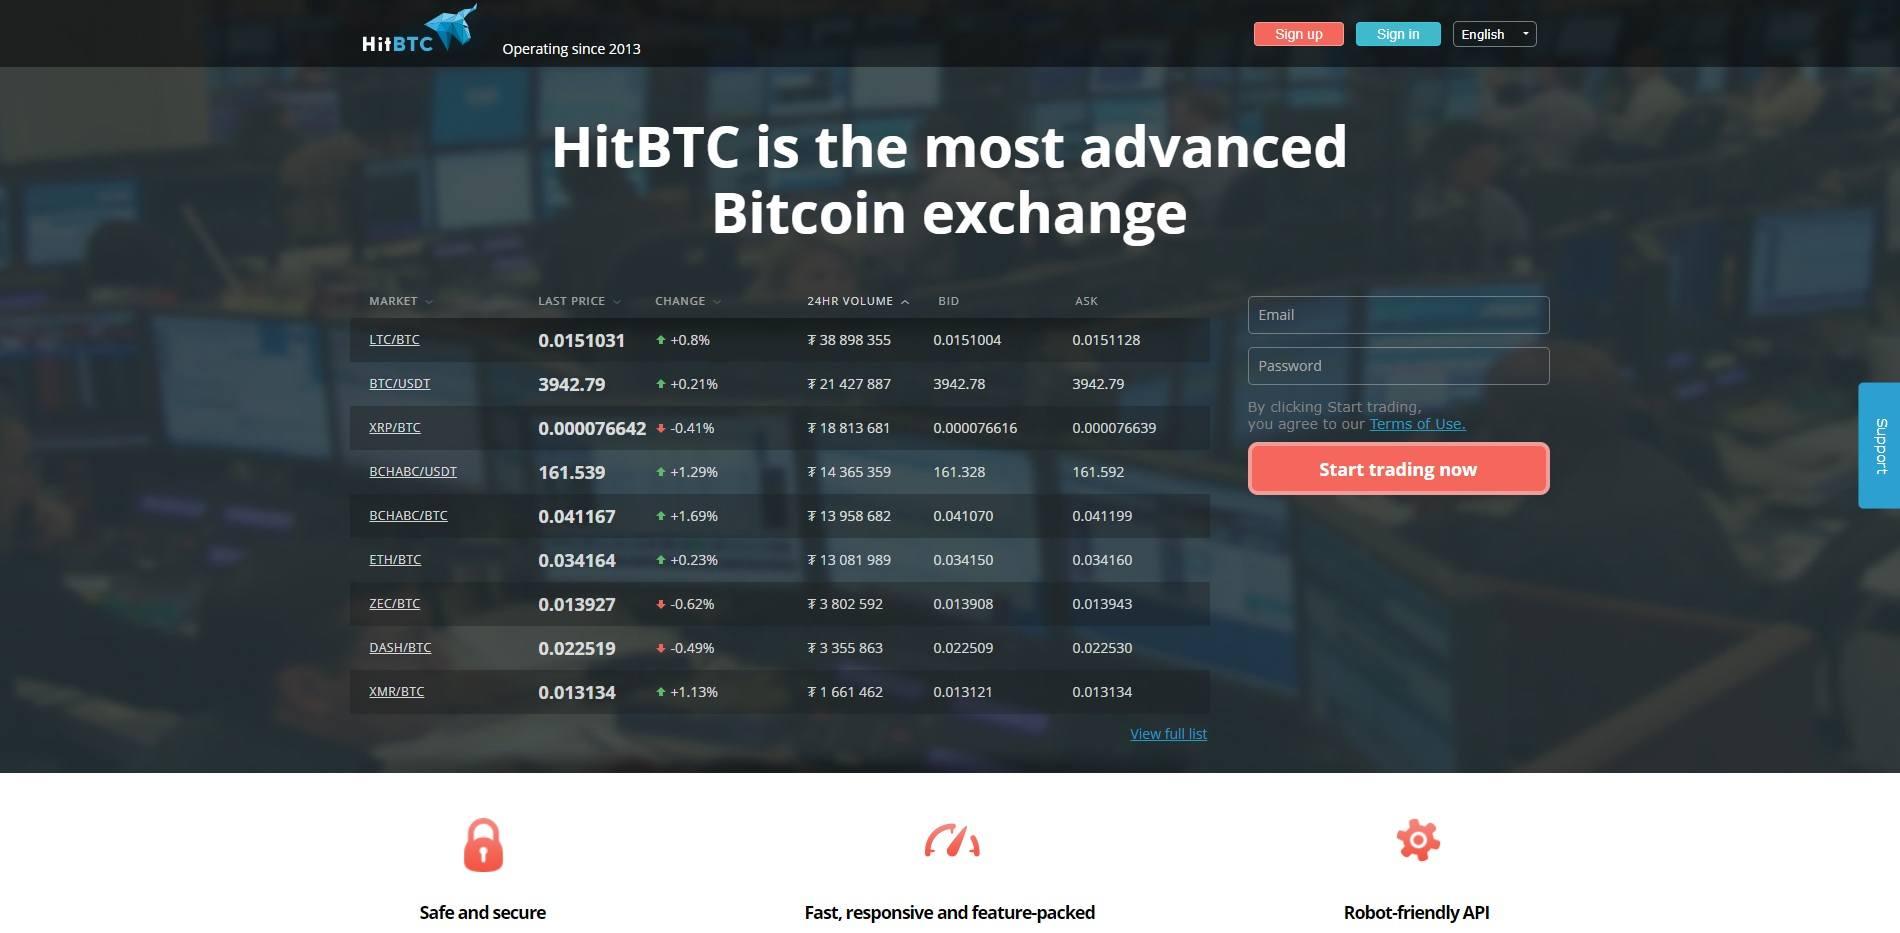 hitbtc bitcoin exchange